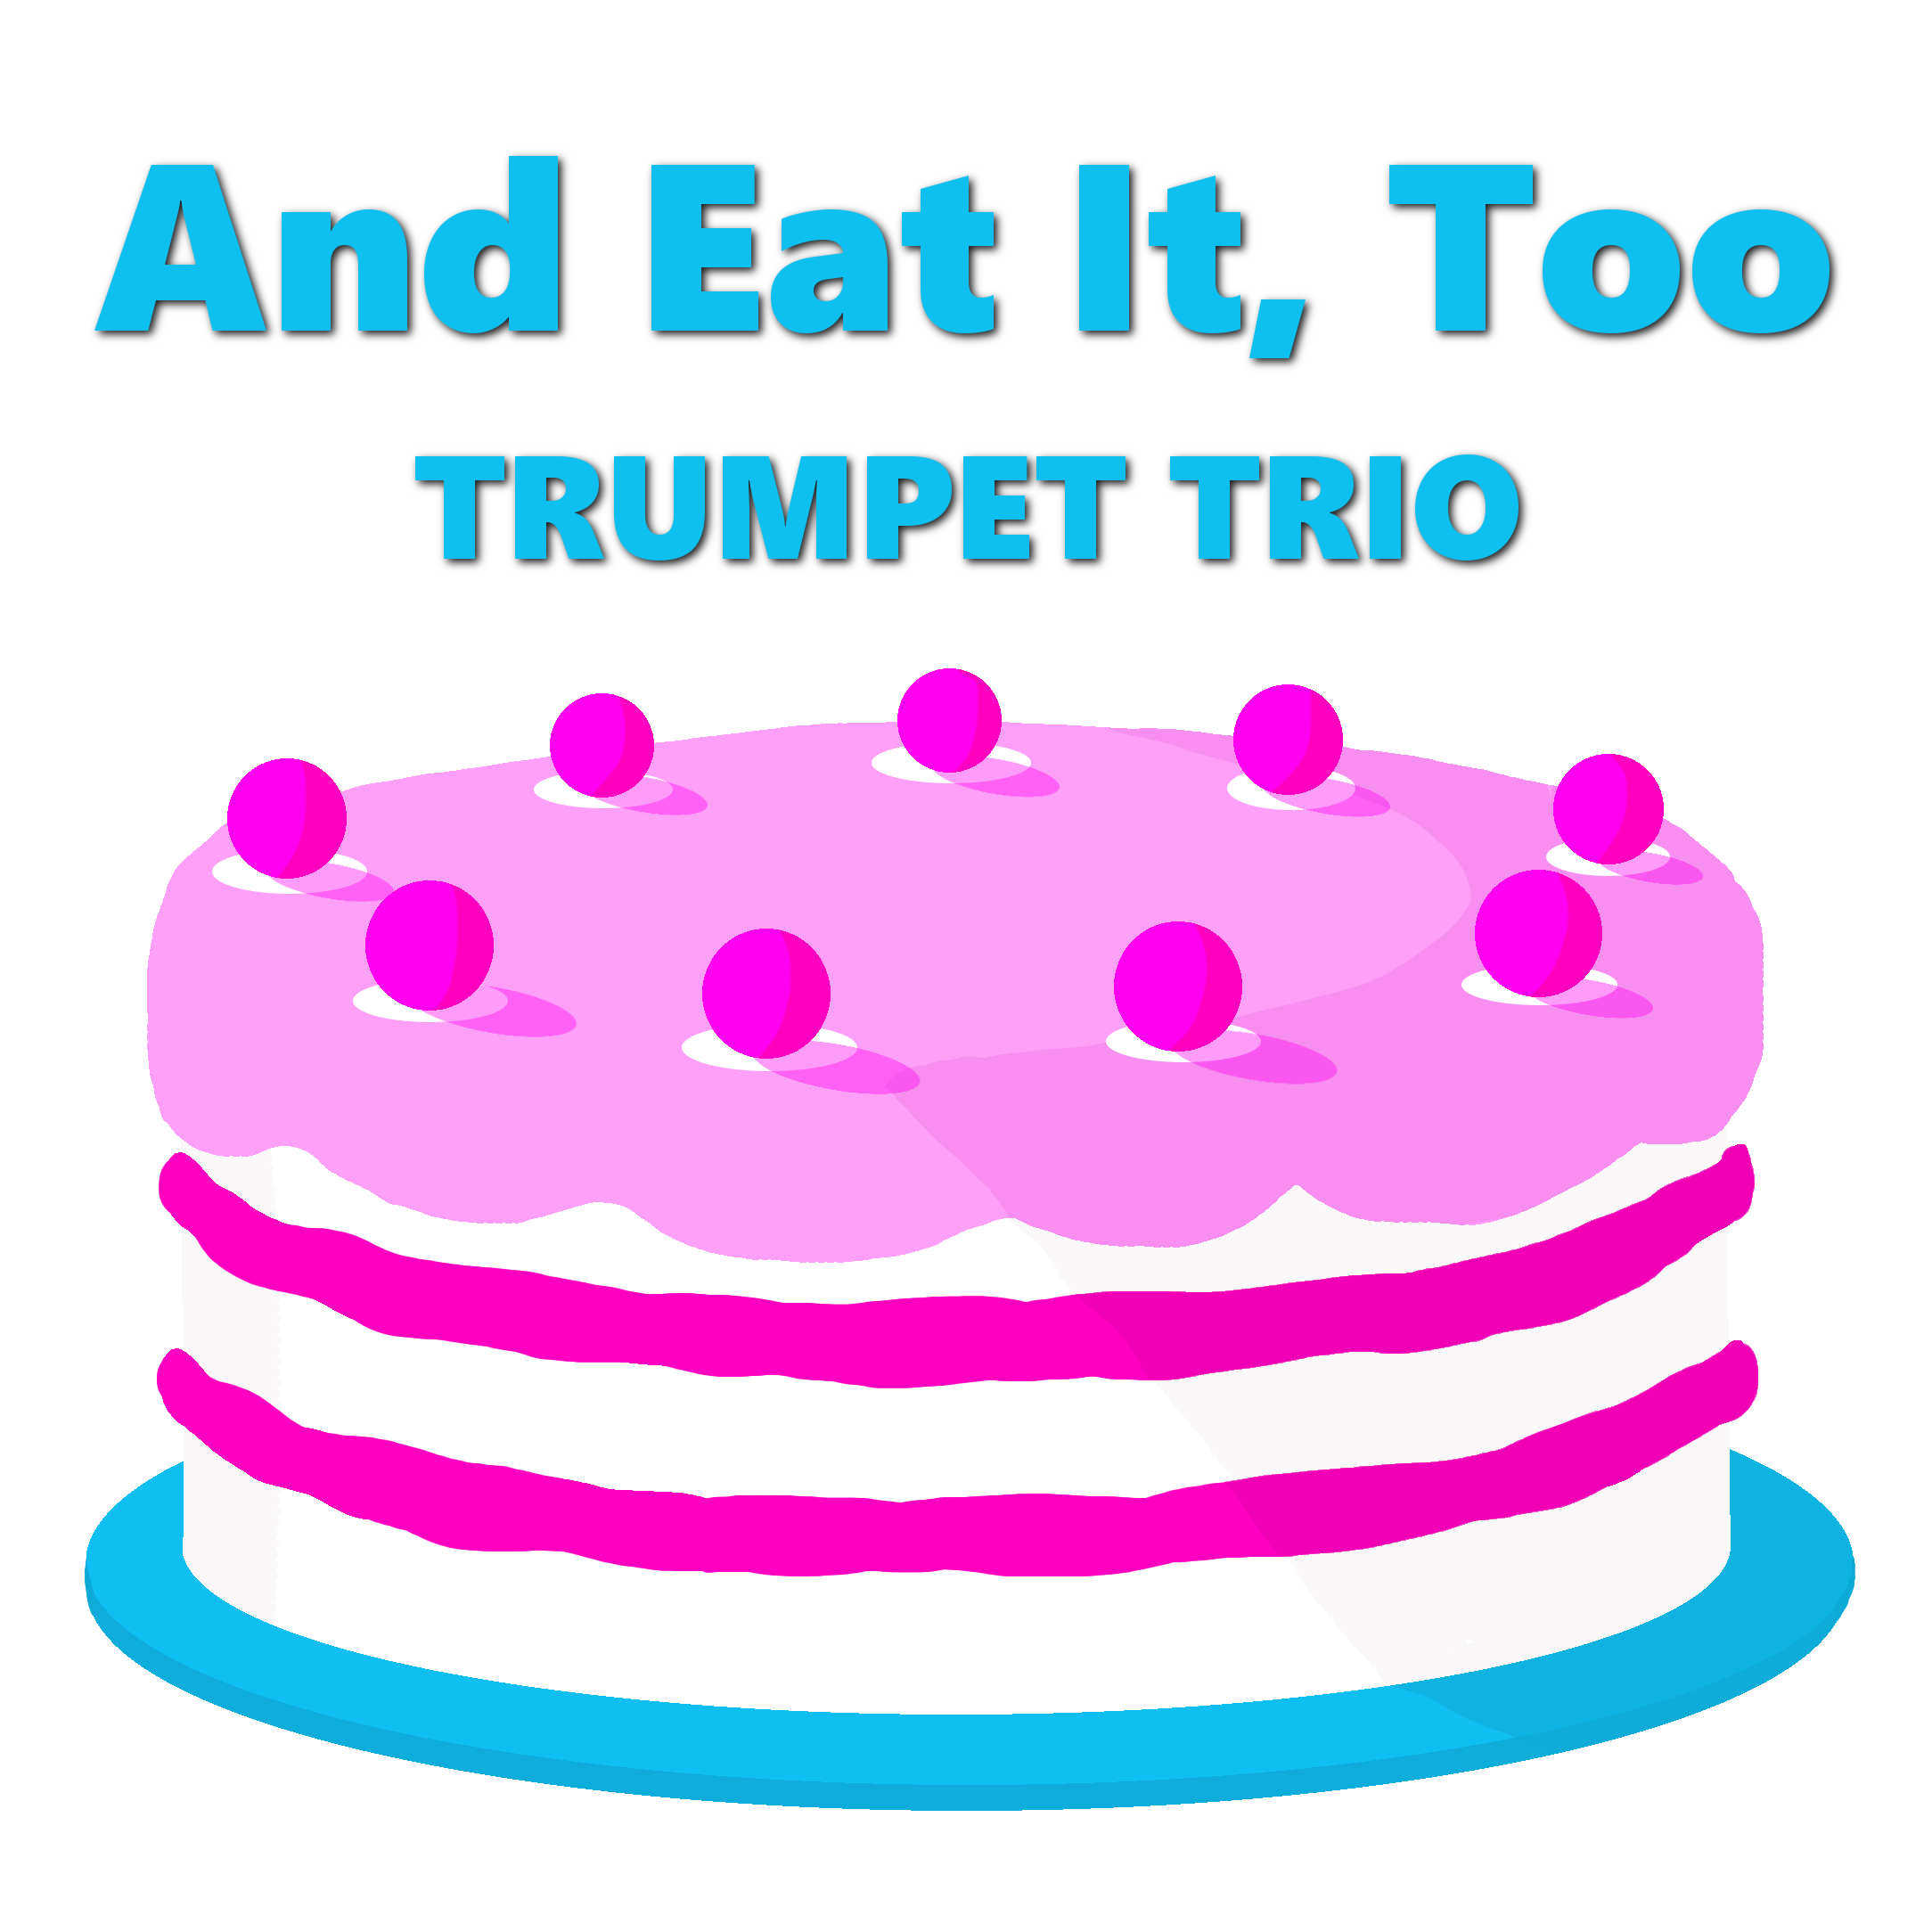 And Eat it, Too for Trumpet Trio